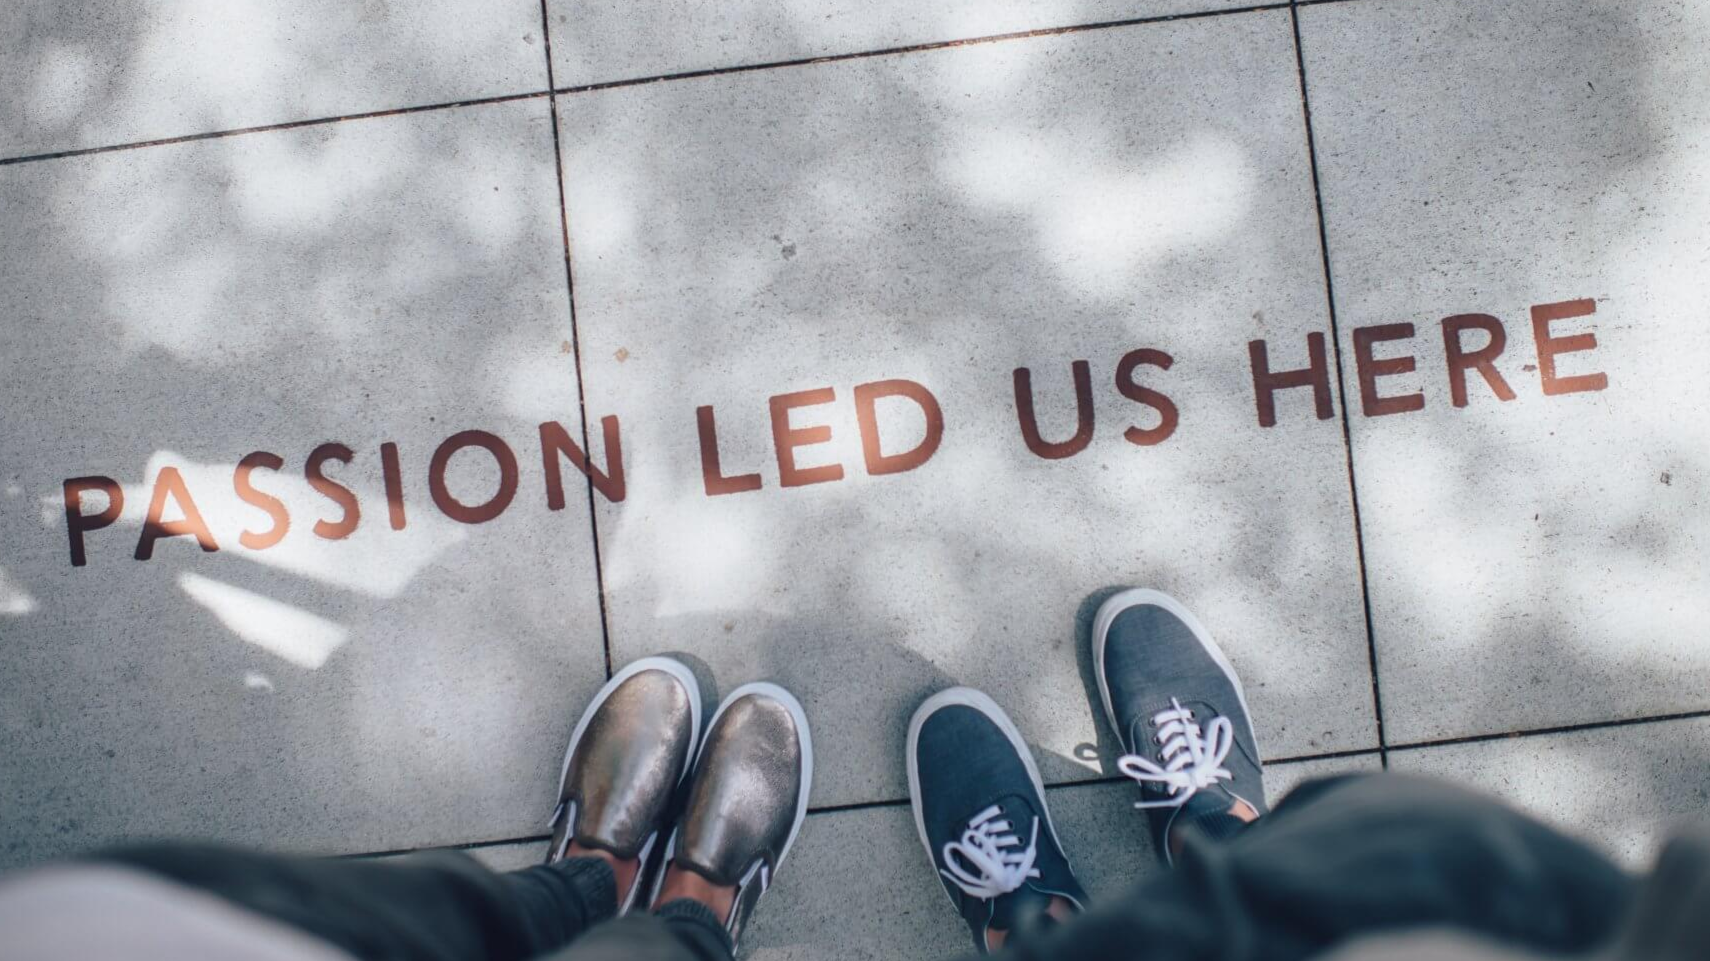 'Passion led us here' painted on the ground in front of two people's feet